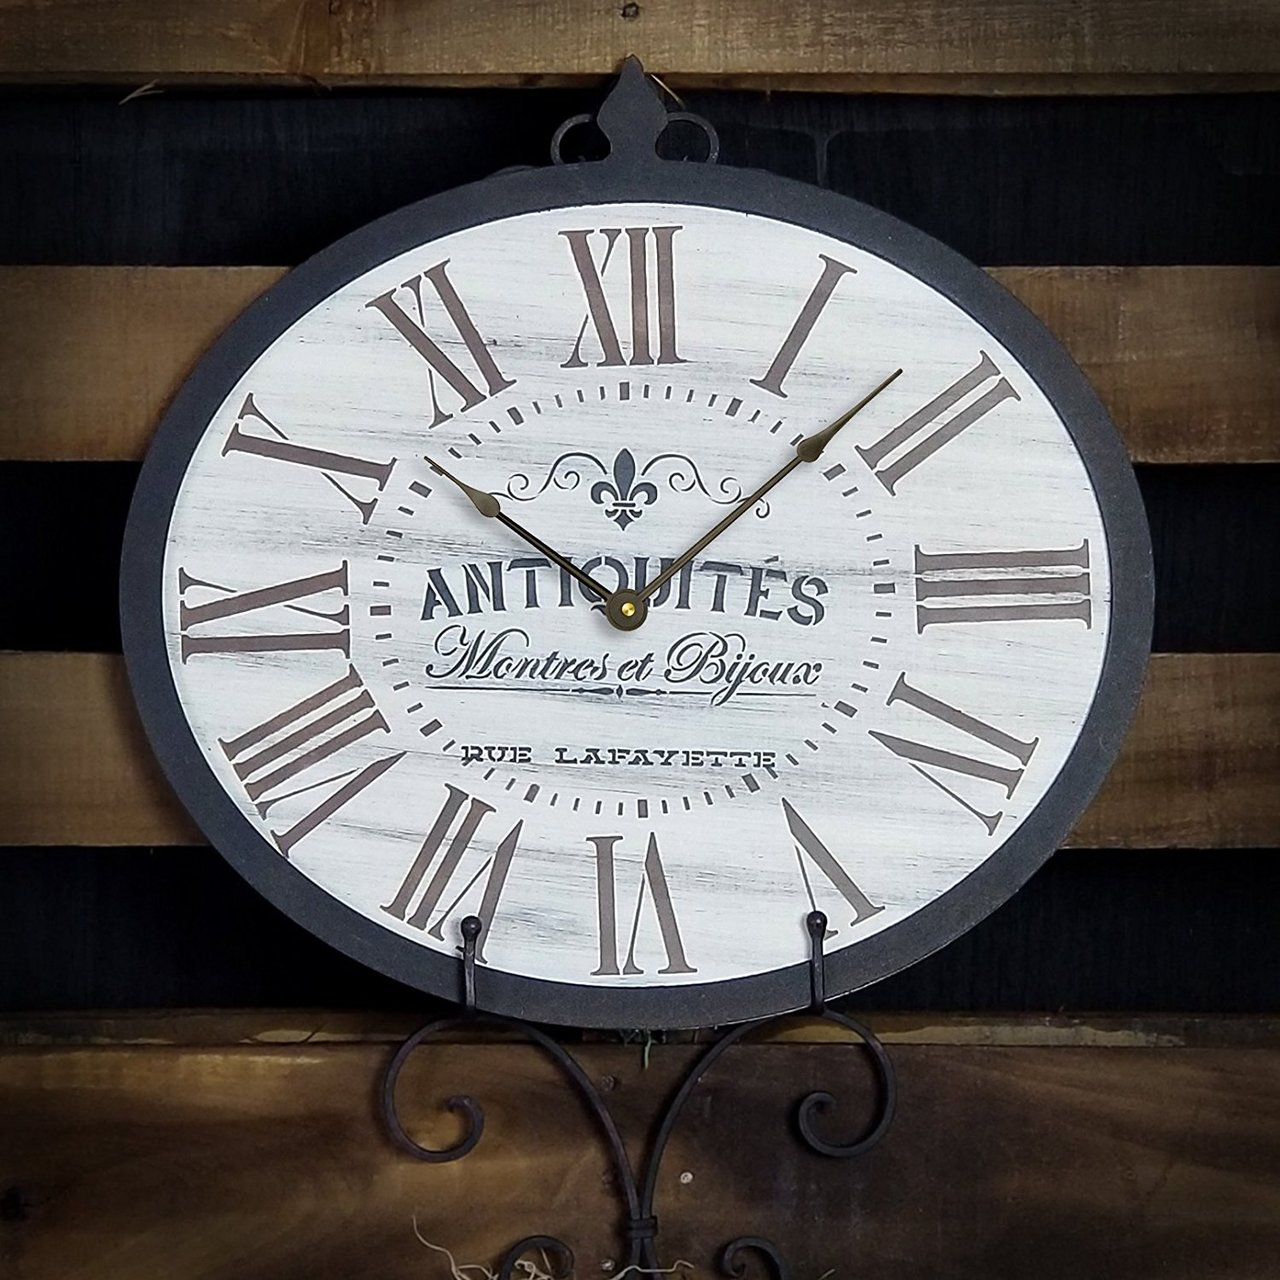 Oval Clock Stencil w/Roman Numerals - French Antique Words - DIY Painting Vintage Country Farmhouse Home Decor for Walls - STCL2420 - Select Size